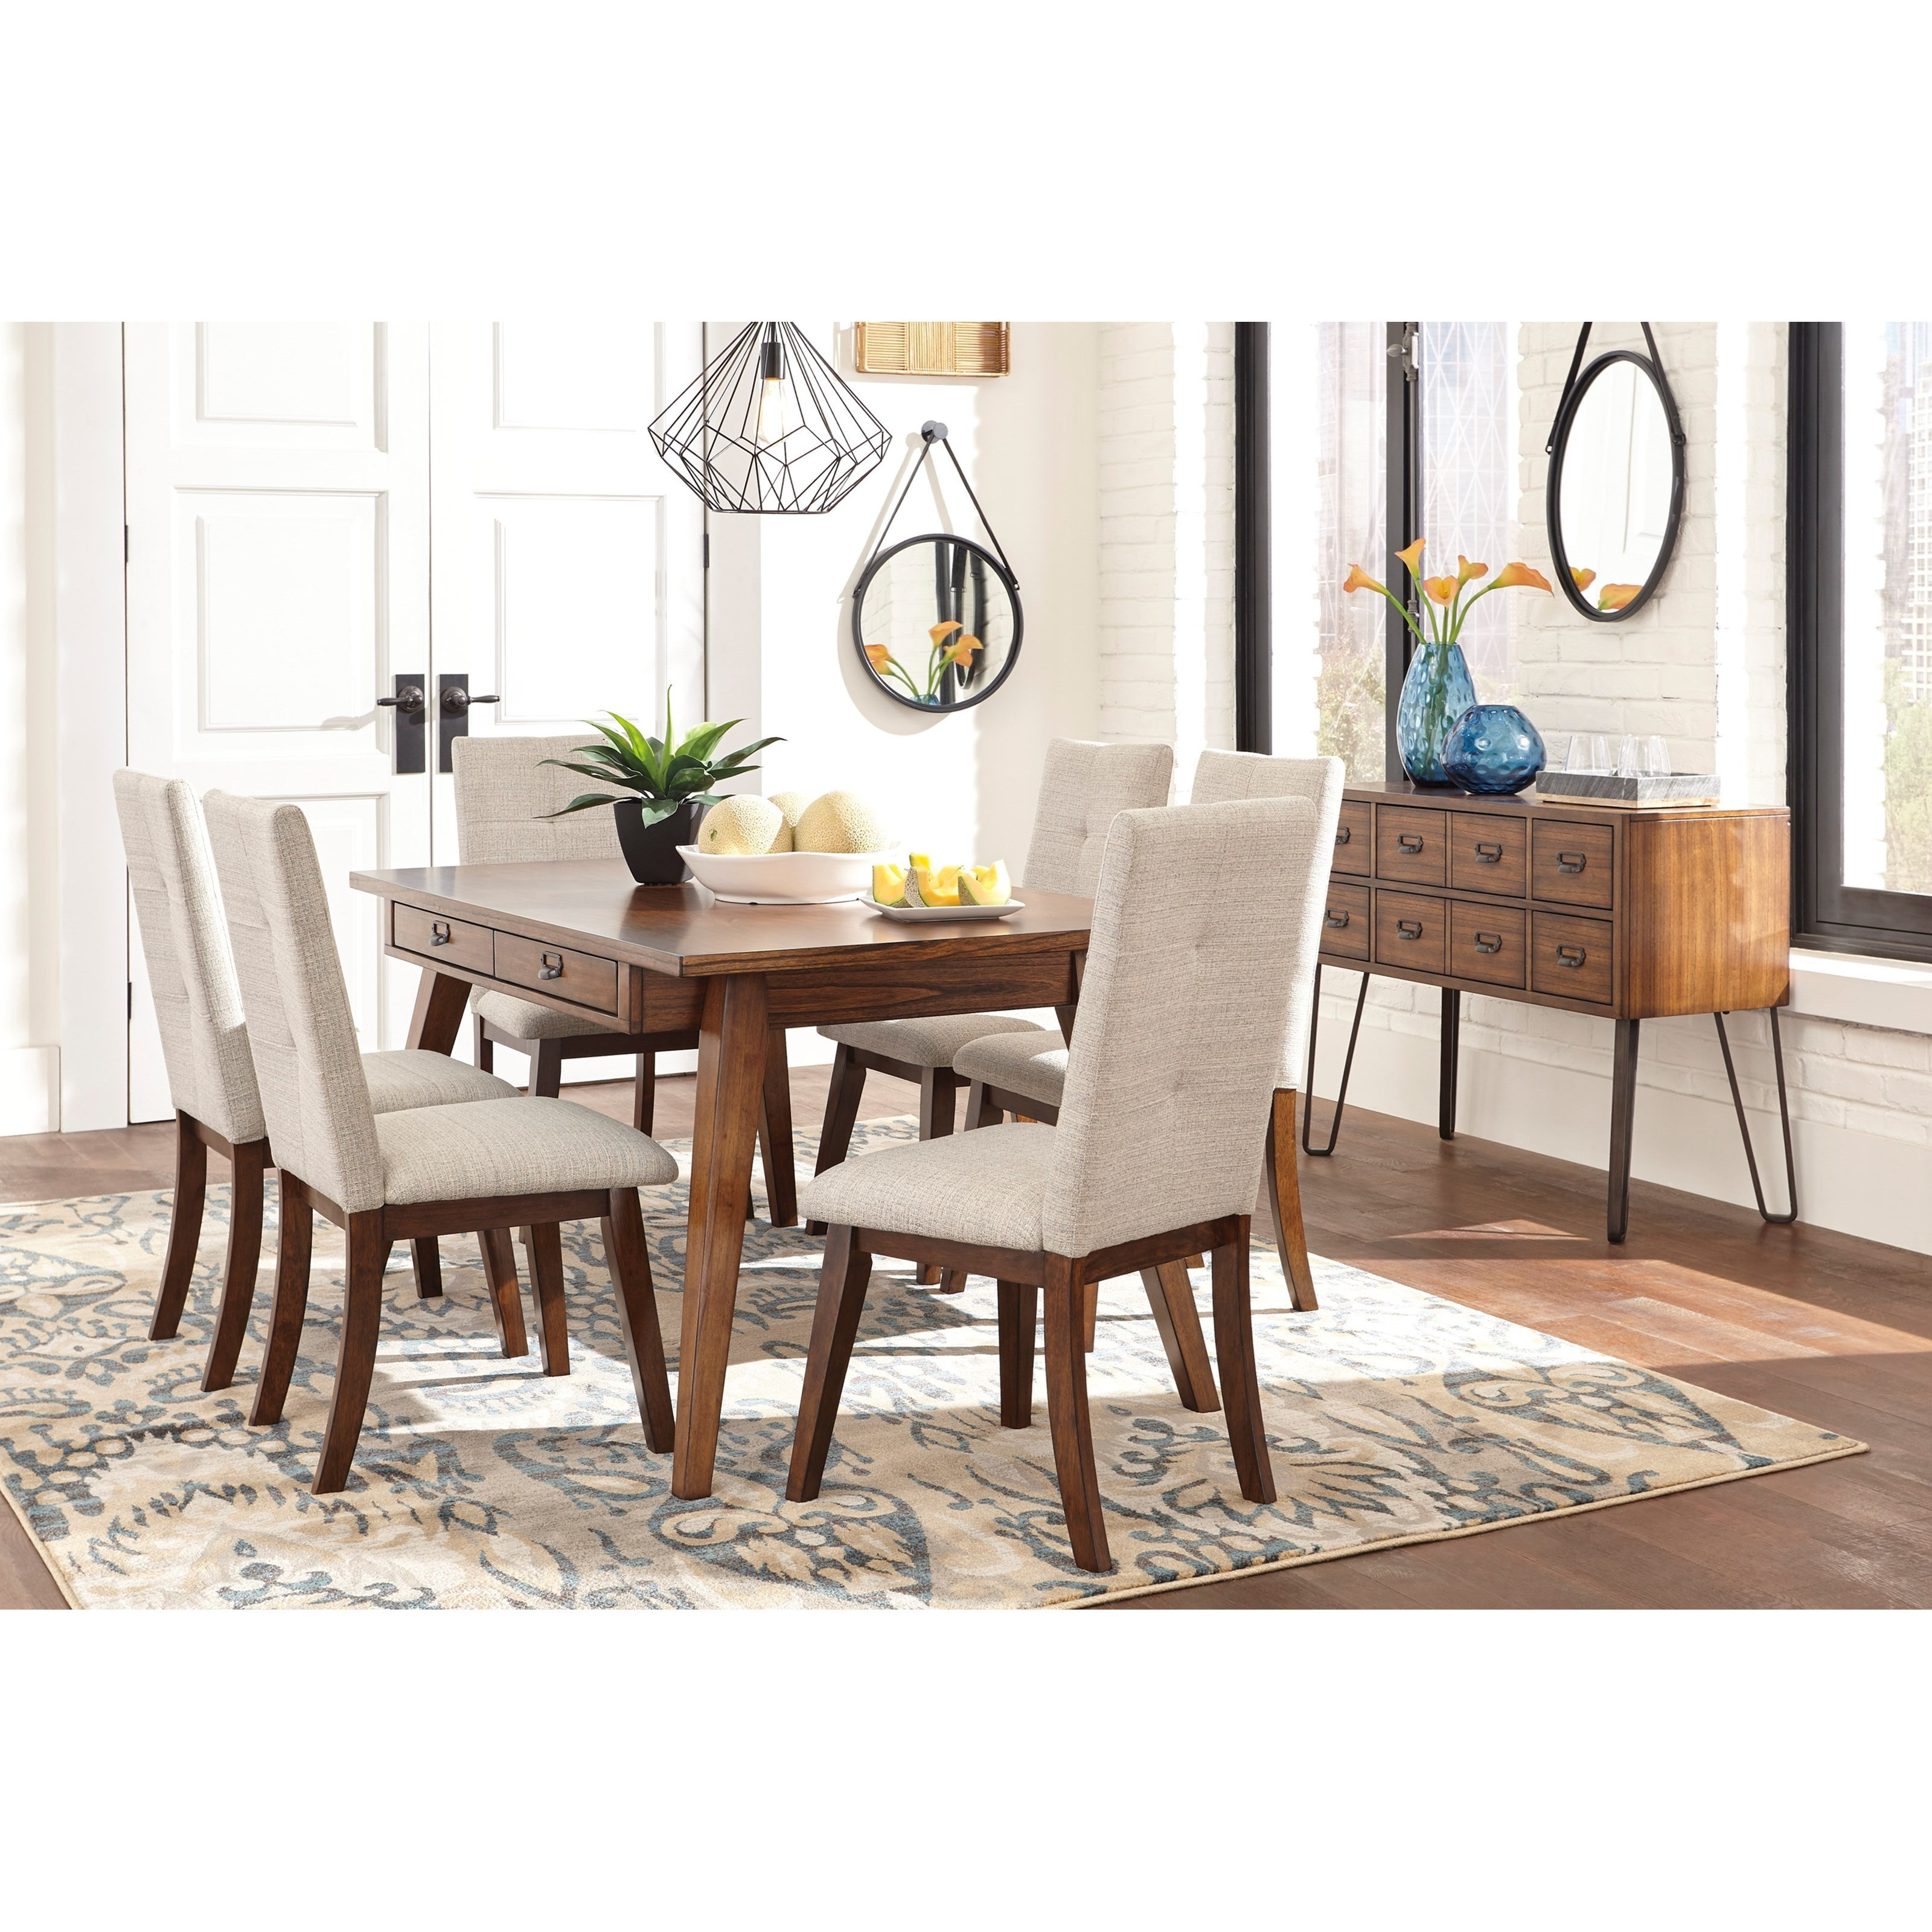 Signature Design By Ashley Centiar Casual Dining Room Group